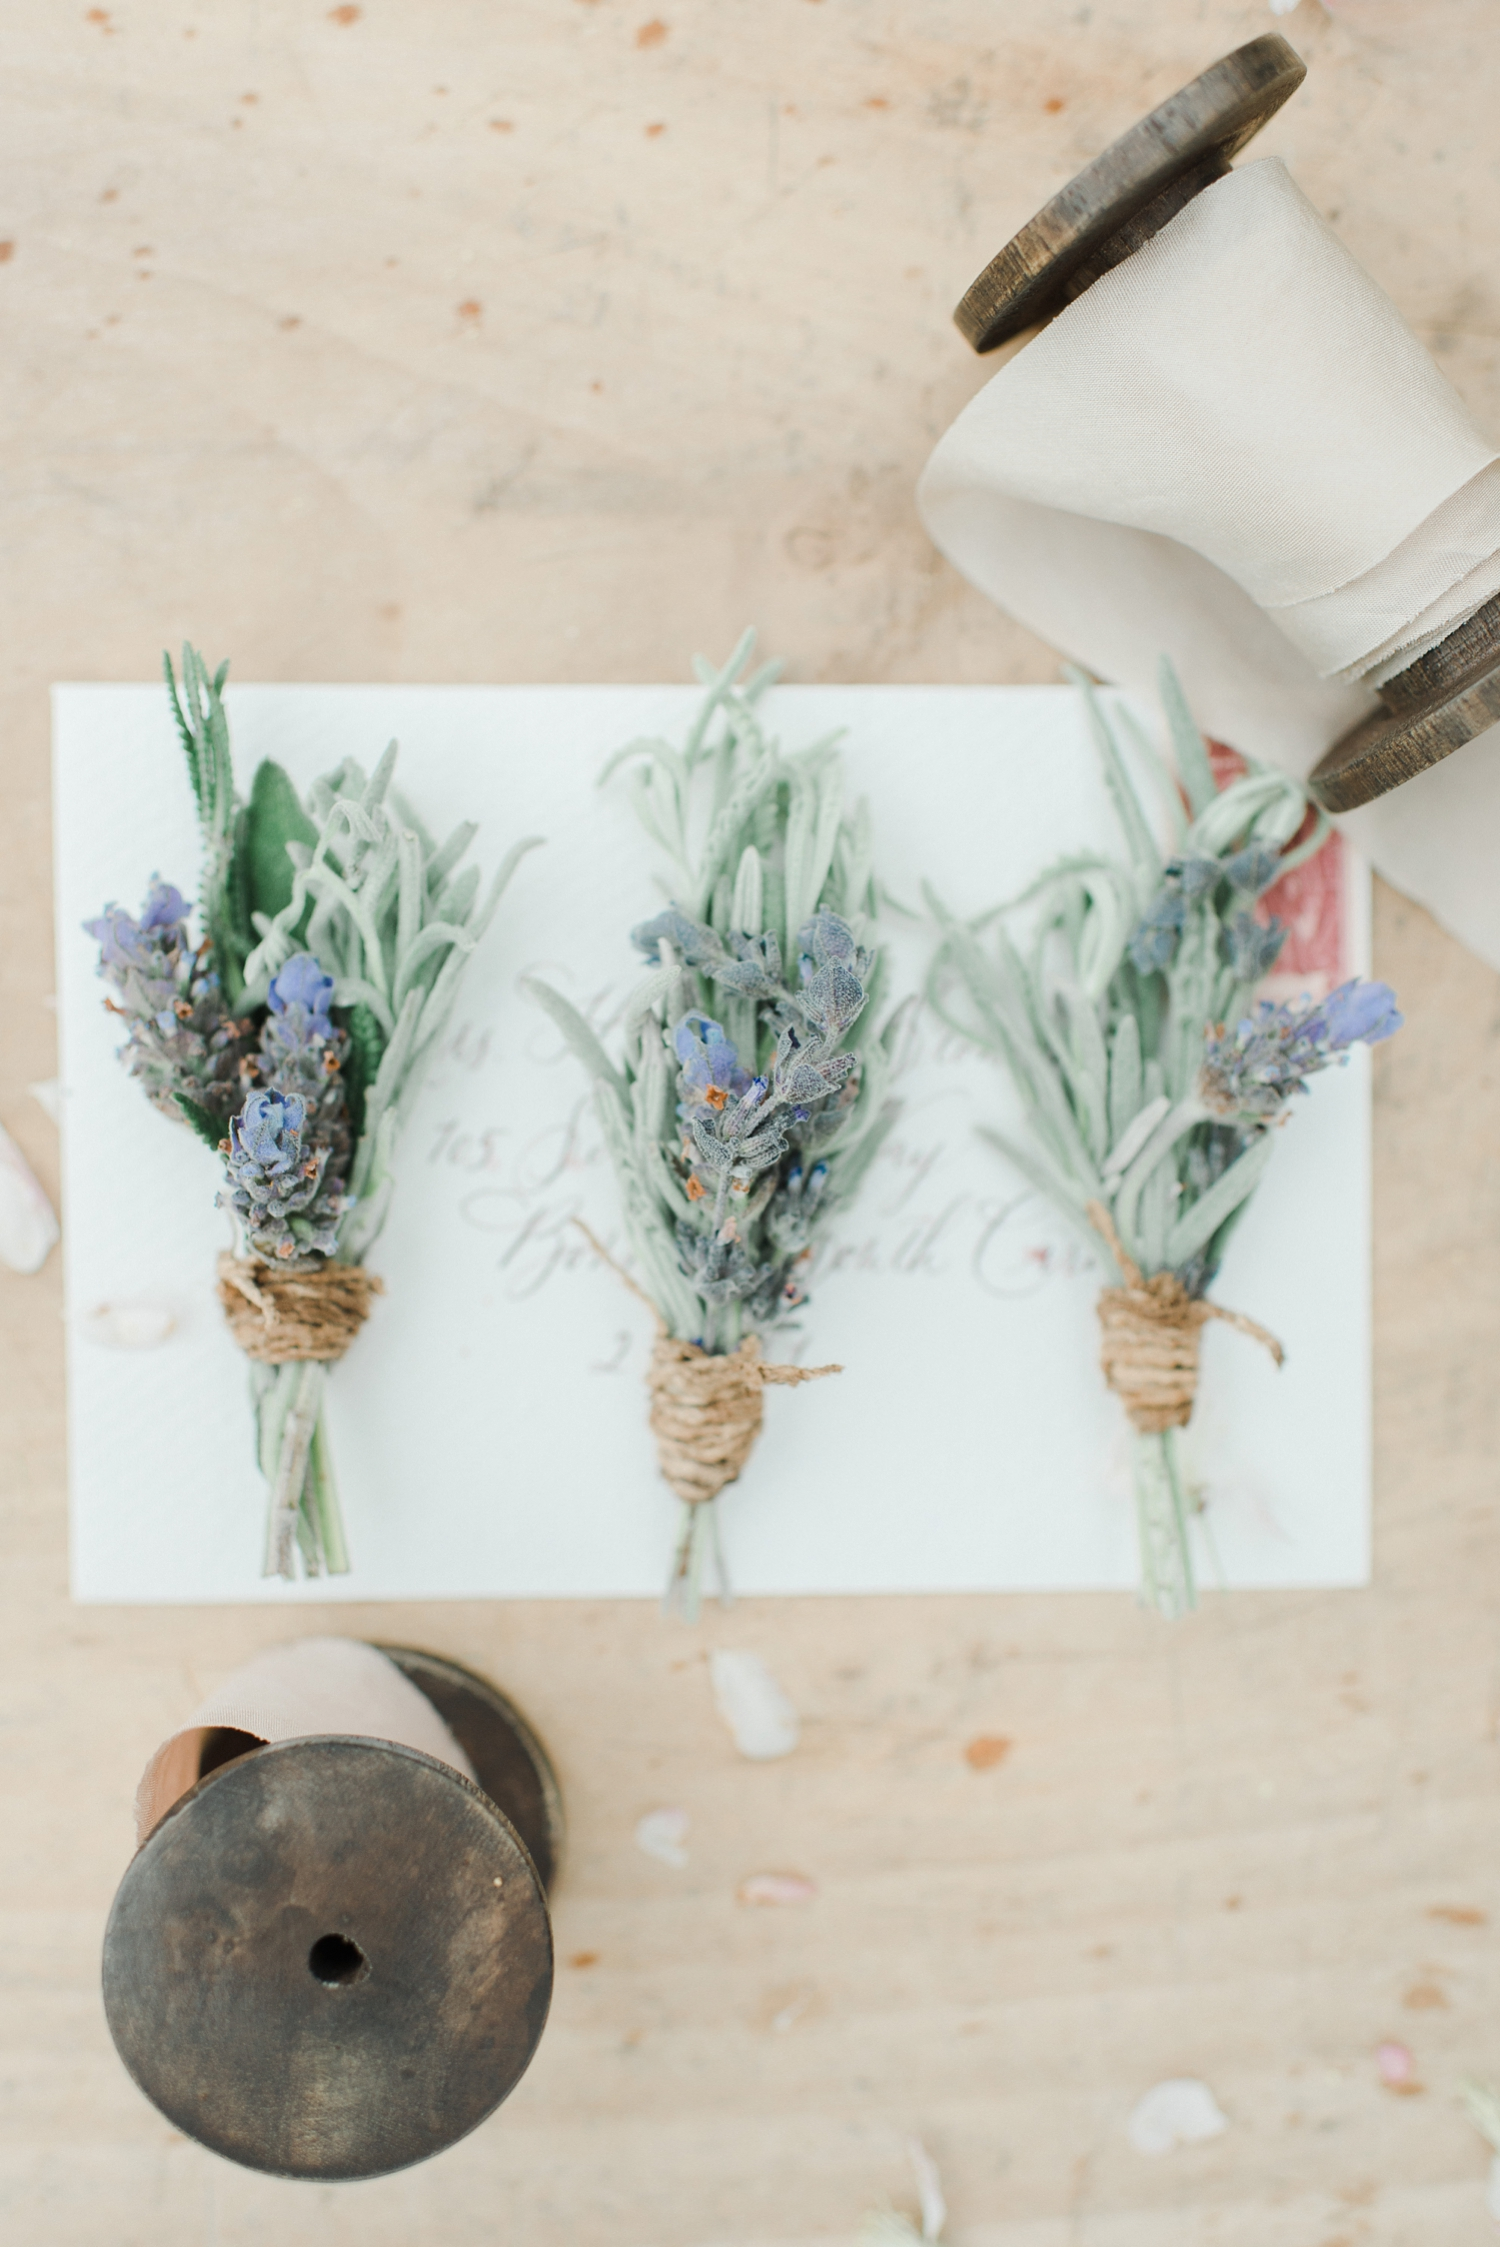 cottage_hill_herb_inspired_wedding_Oatlands_VA_wedding_Photographer_0040.jpg